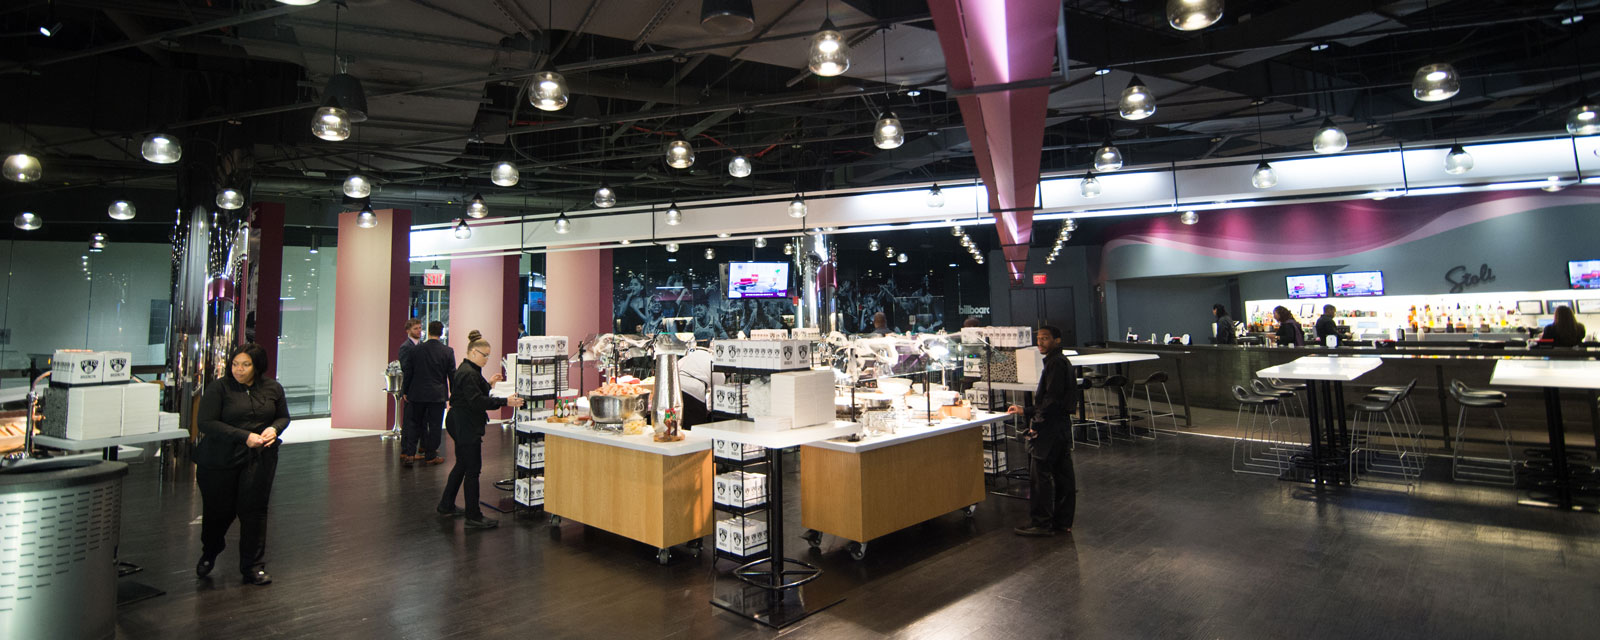 Photo #6 Qatar Airways Club at Barclays Center